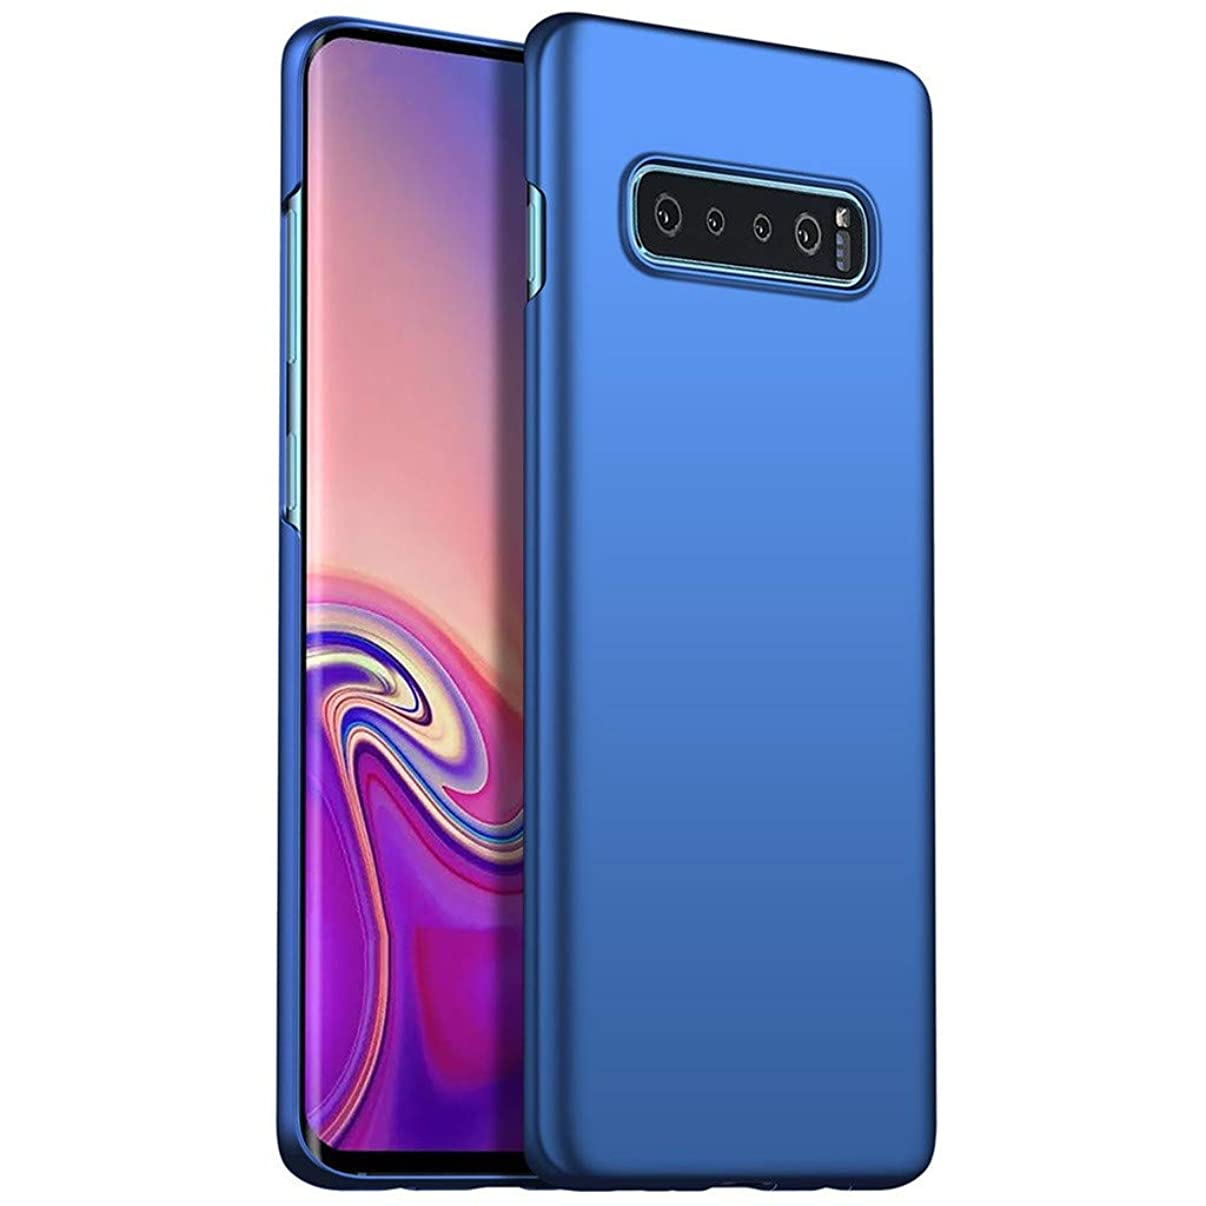 Ecurson Samsung Galaxy S10 Plus 6.3in Case, Ultra-Thin Luxury Hard PC Protective Case Cover for Samsung Galaxy S10 Plus 6.3inch (2019 Release)